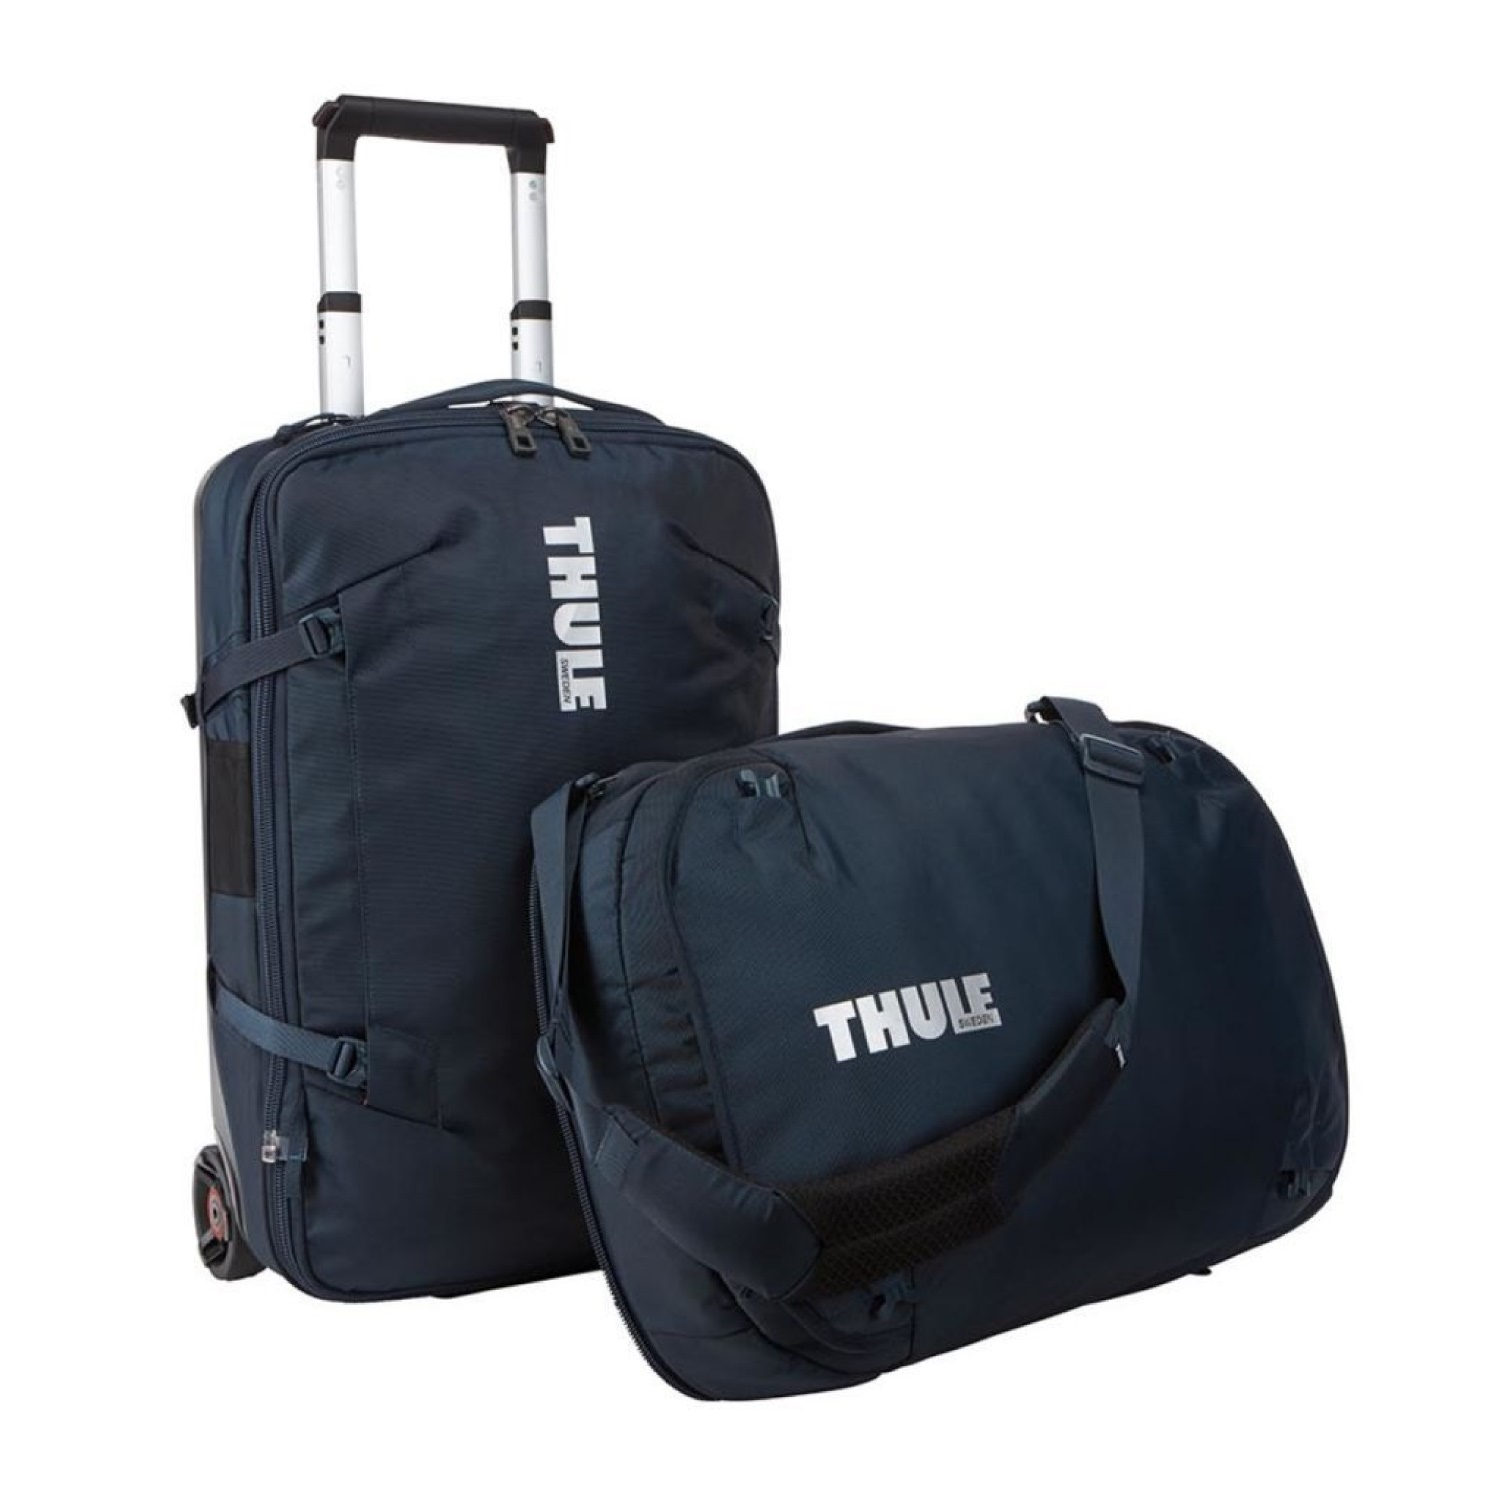 "Buy Thule Subterra Luggage 22"" - Mineral in Singapore ..."